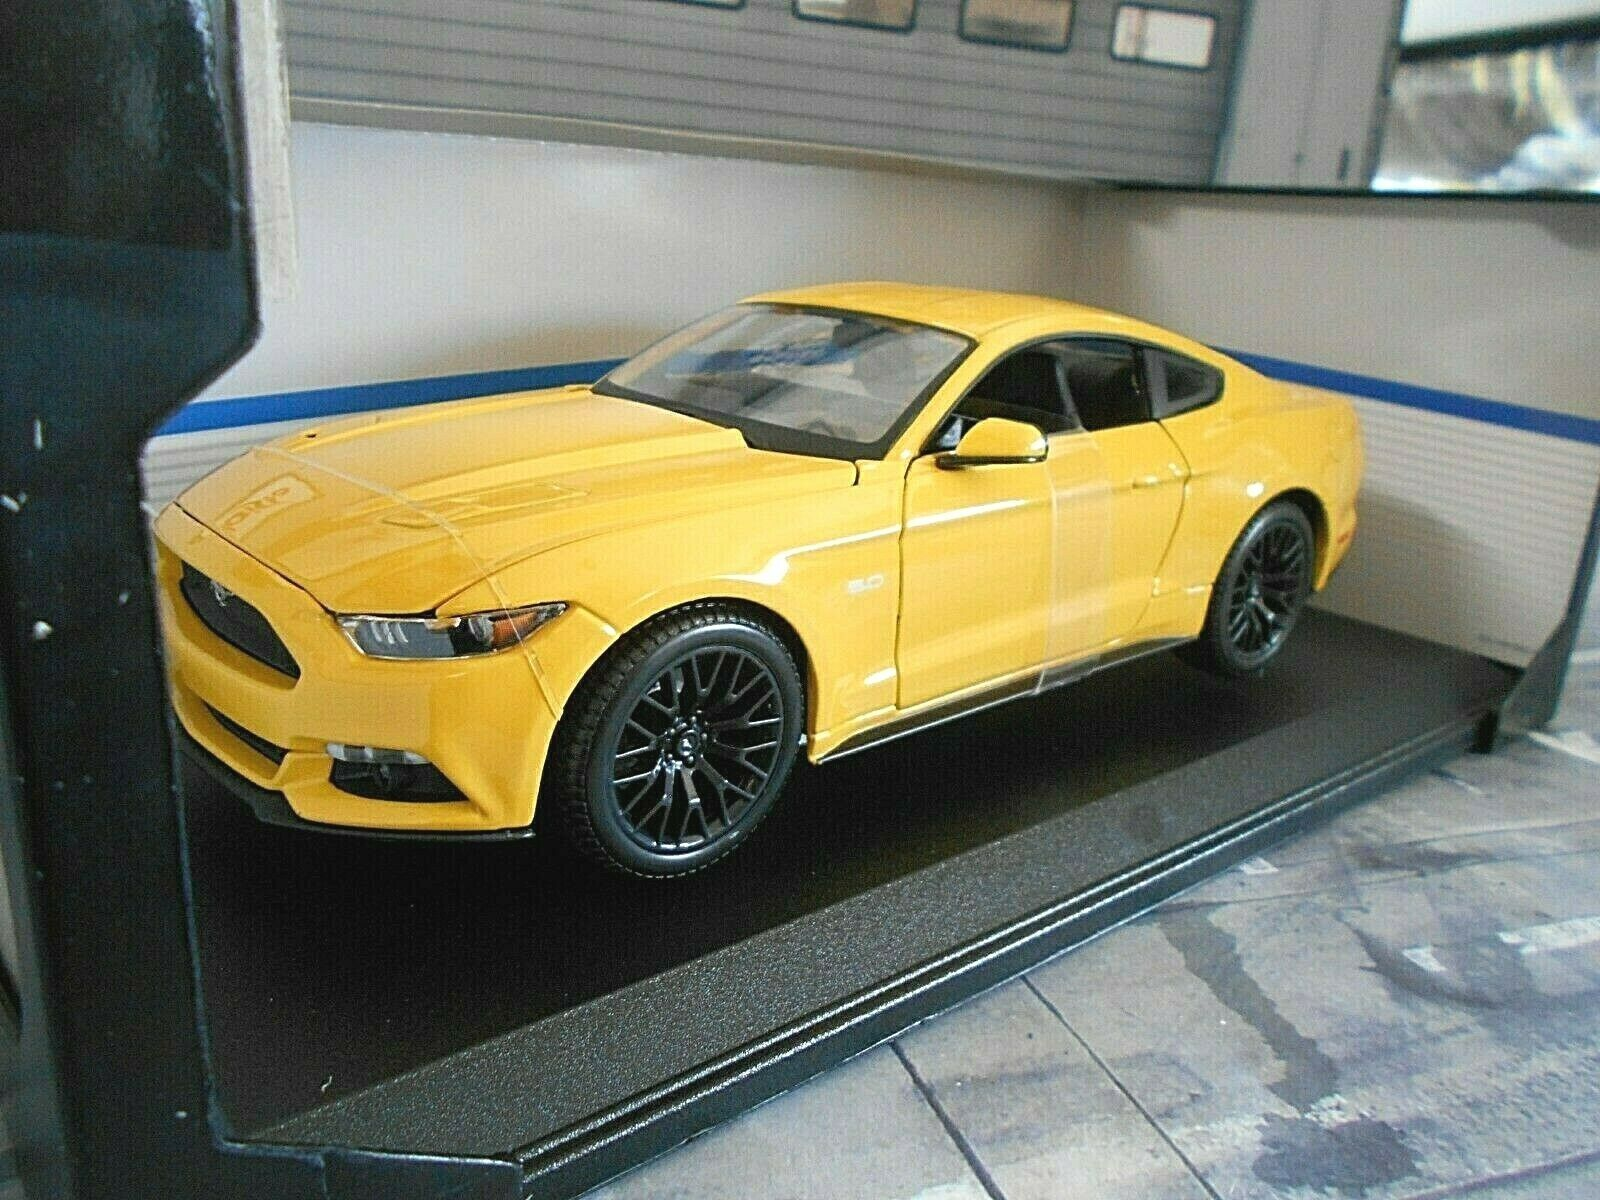 FORD Mustang GT Coupe 2015 yellow yellow yellow yellow V8 Muscle Car US Maisto 1 18 c9b4df